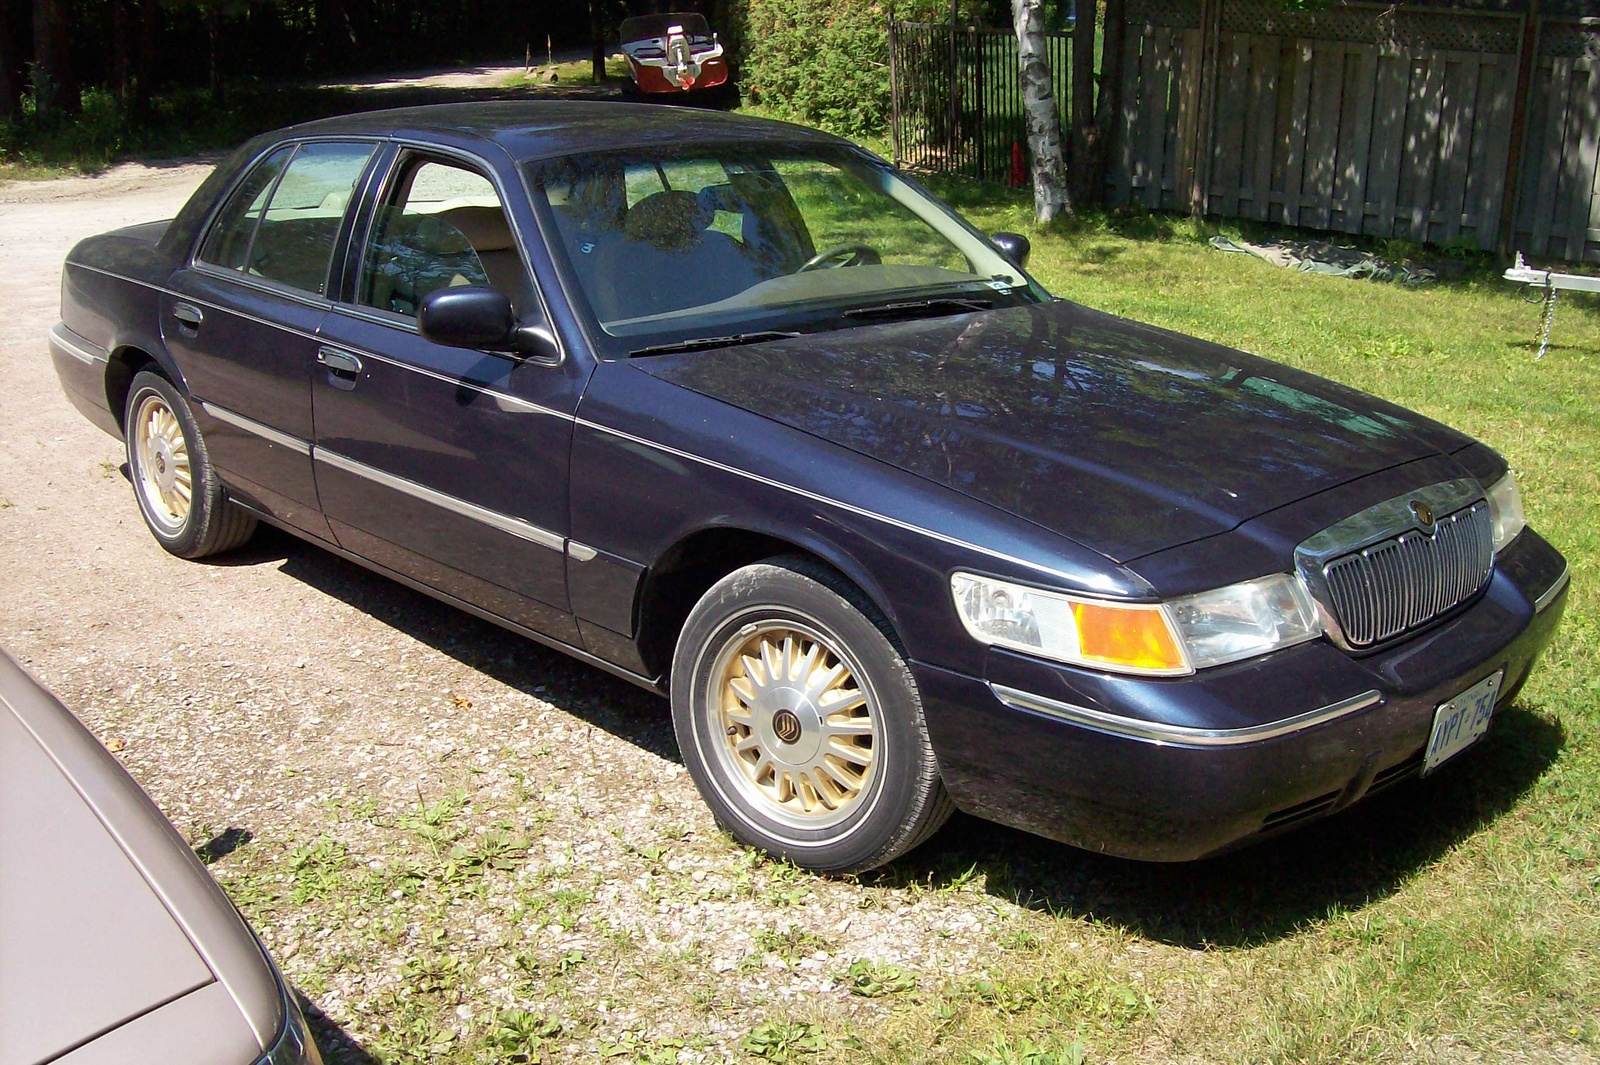 Picture of 1999 Mercury Grand Marquis 4 Dr LS Sedan